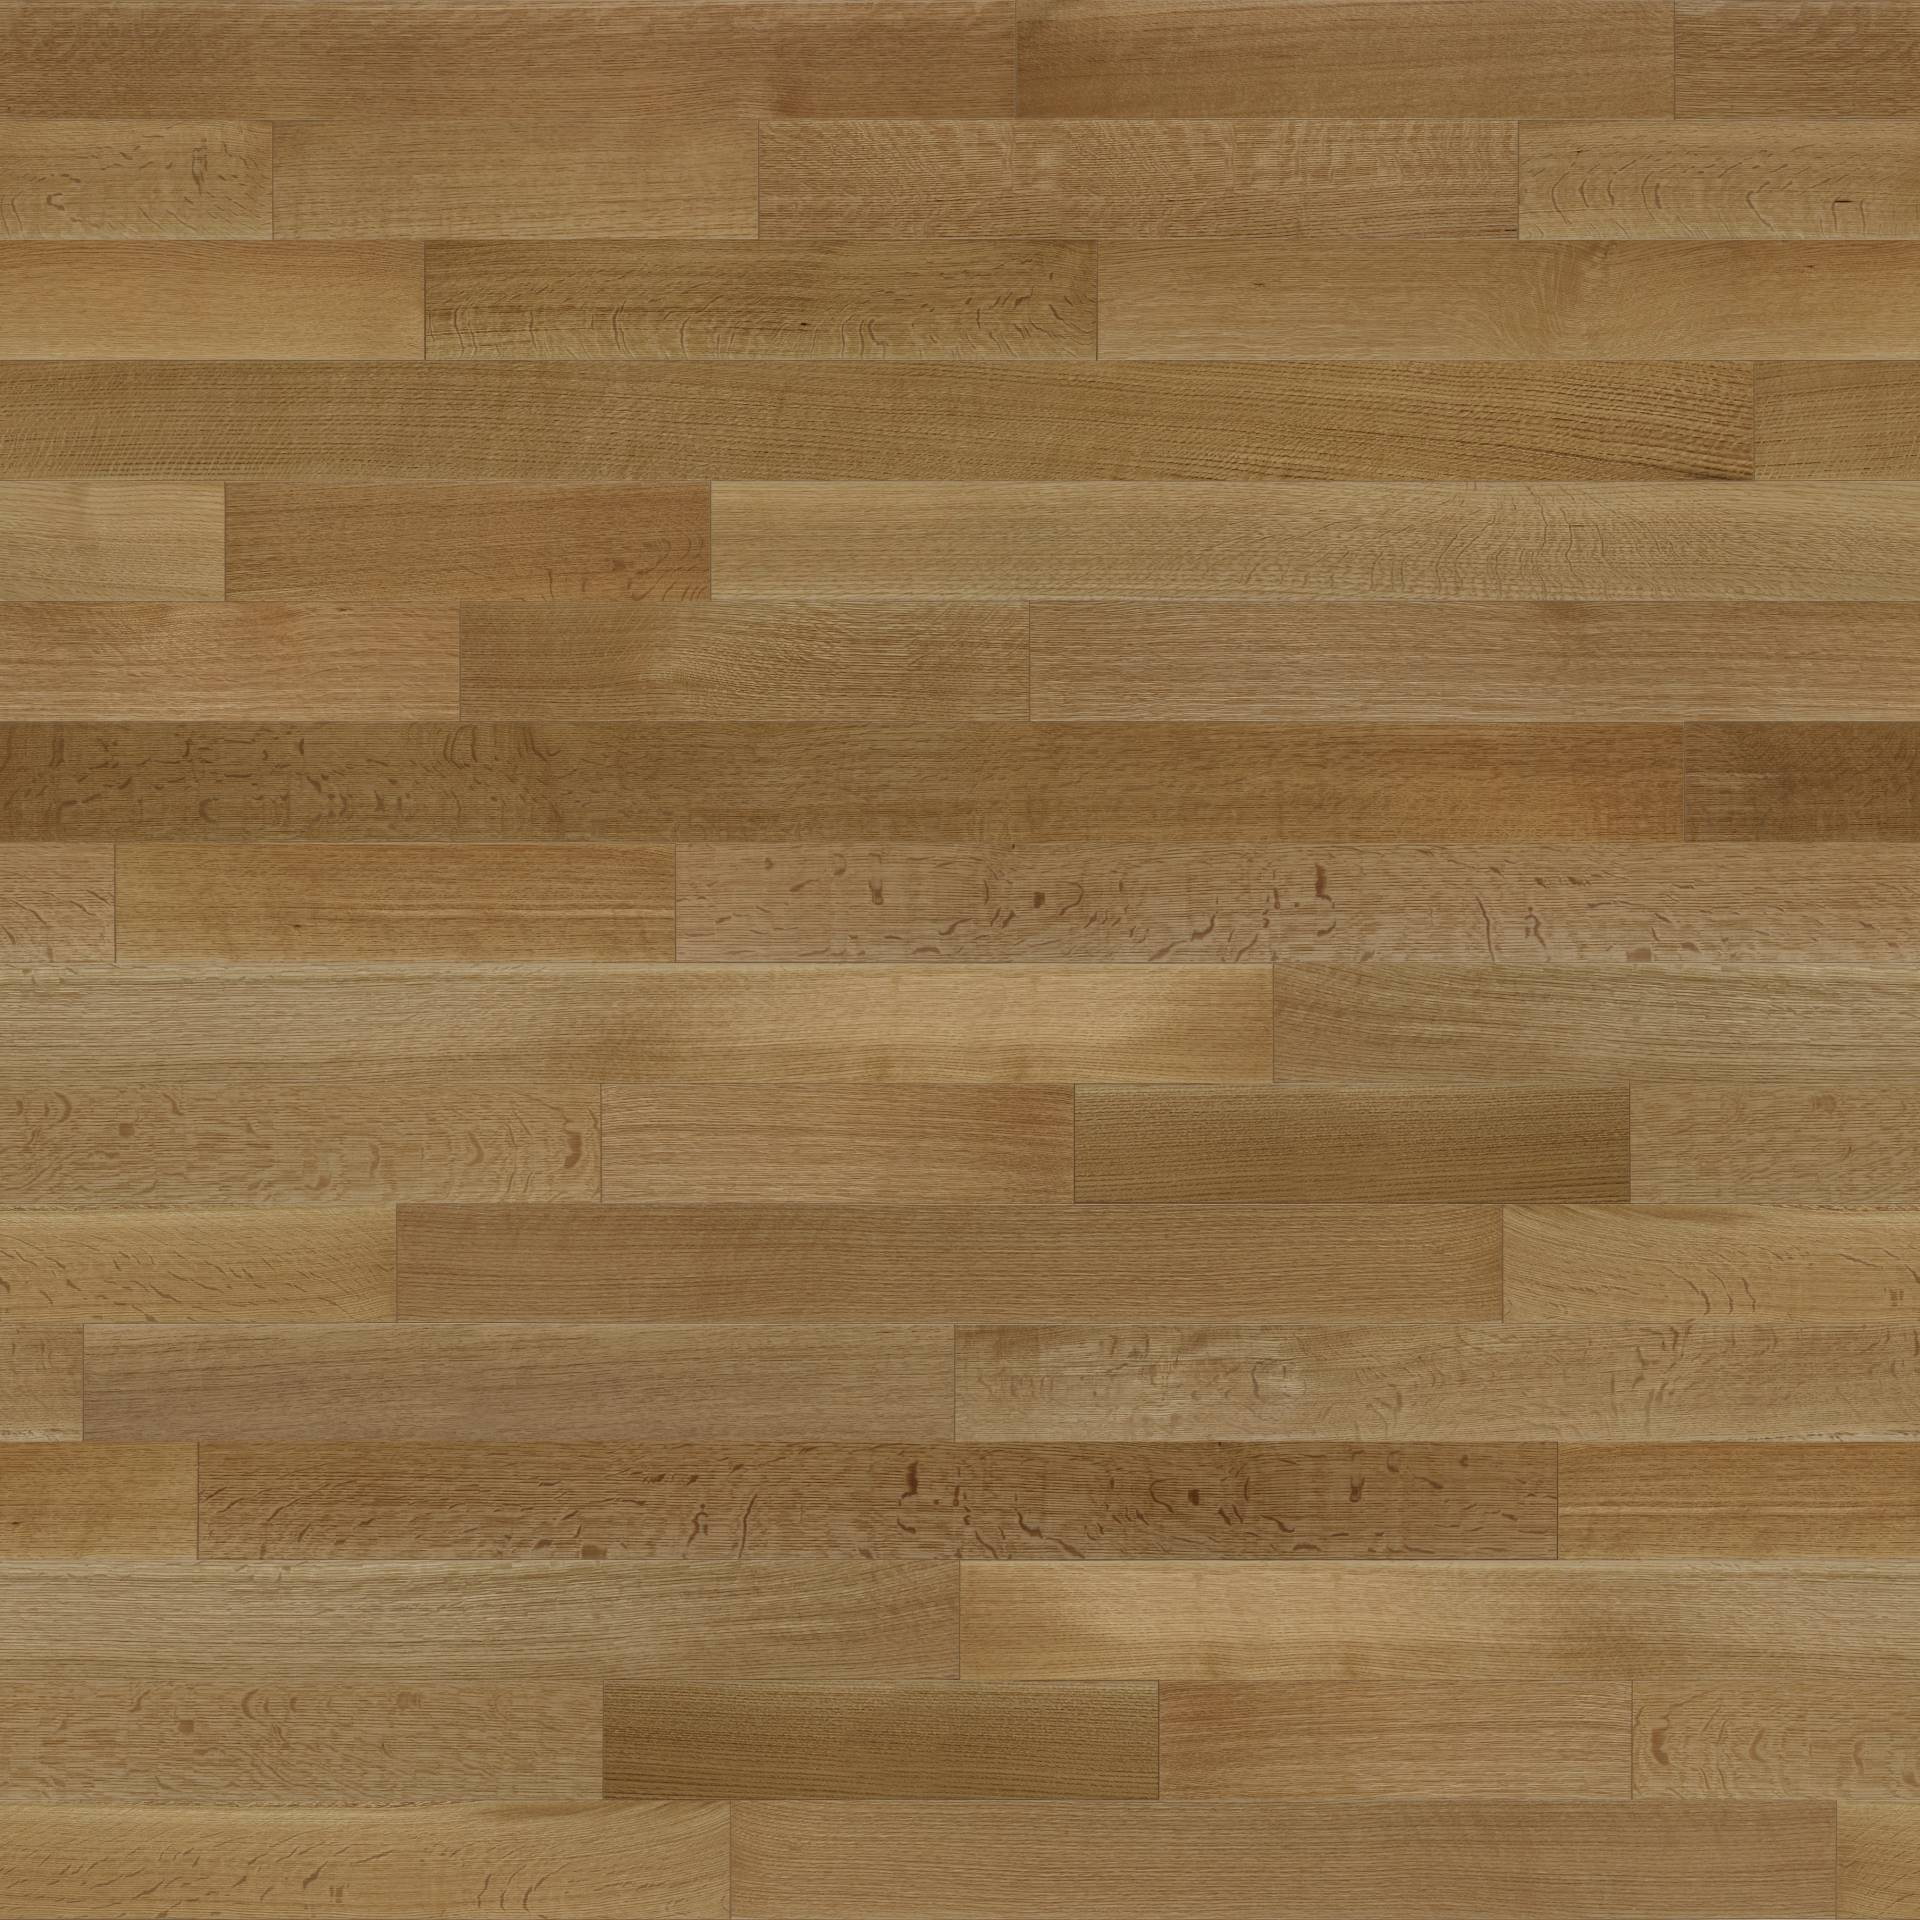 soft for pin white floors natural matte rubbed click oil oak flooring finish here a velvety with